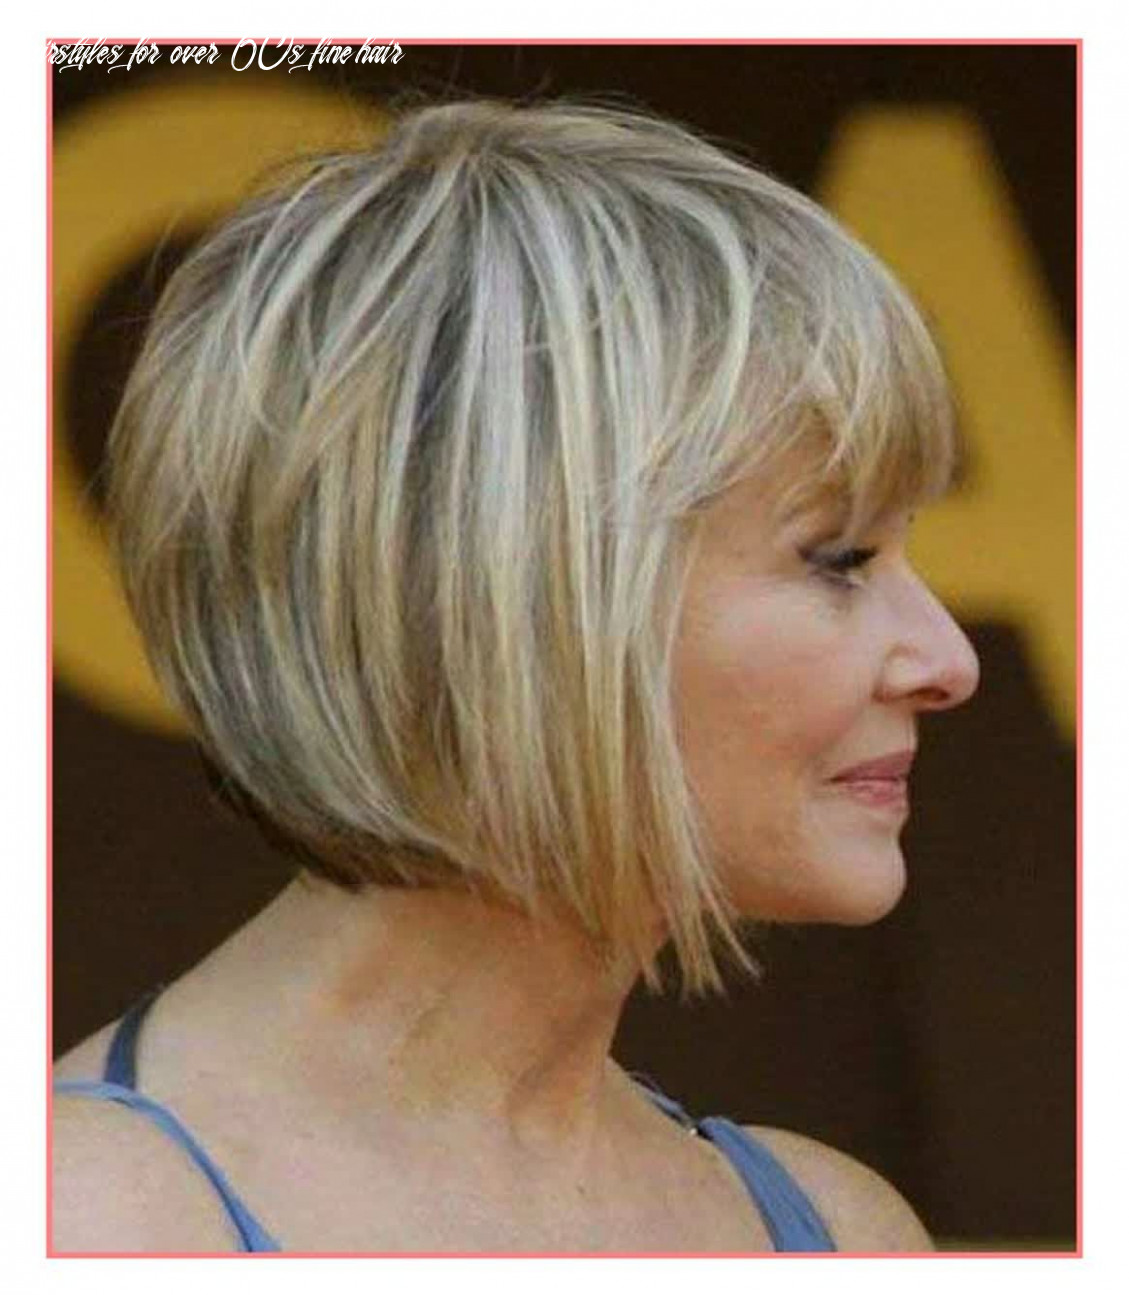 Top haircuts short bob hairstyles for over 8s | thick hair styles